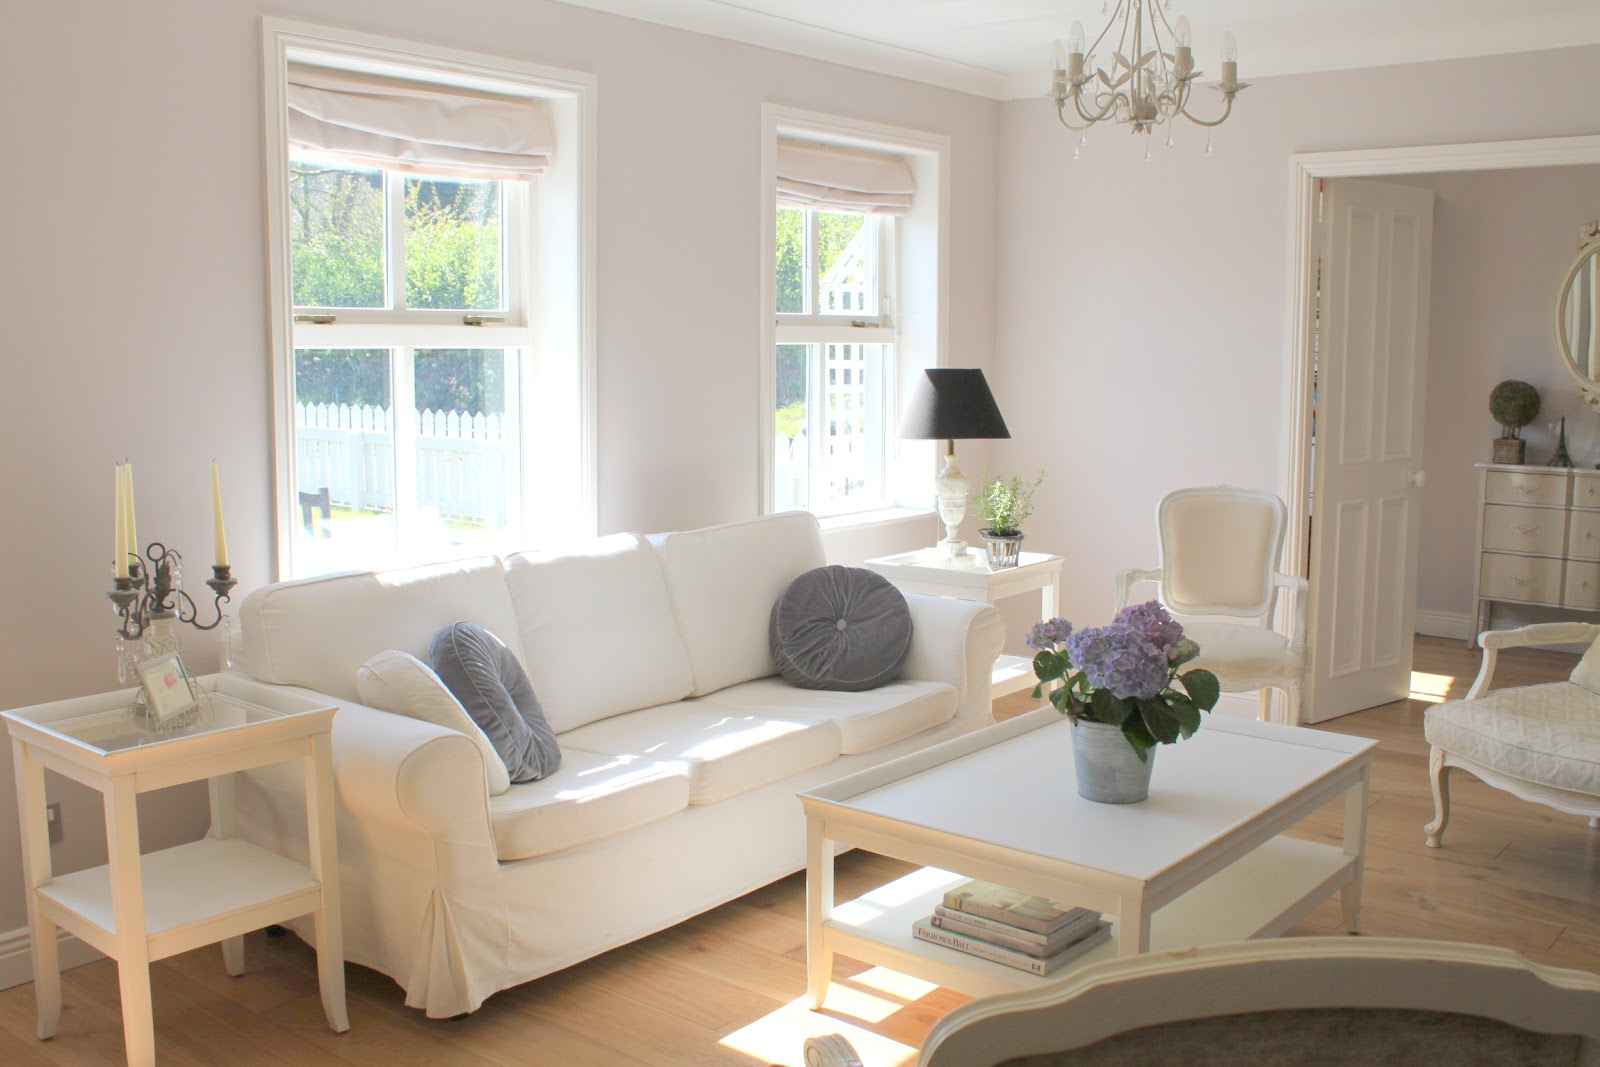 ikea-living-room-decorating-ideas-in-a-small-space-with-a-long-white-sofa-and-white-table-plus-a-vase-then-left-and-the-candle-lights-a-lamp-left-corner